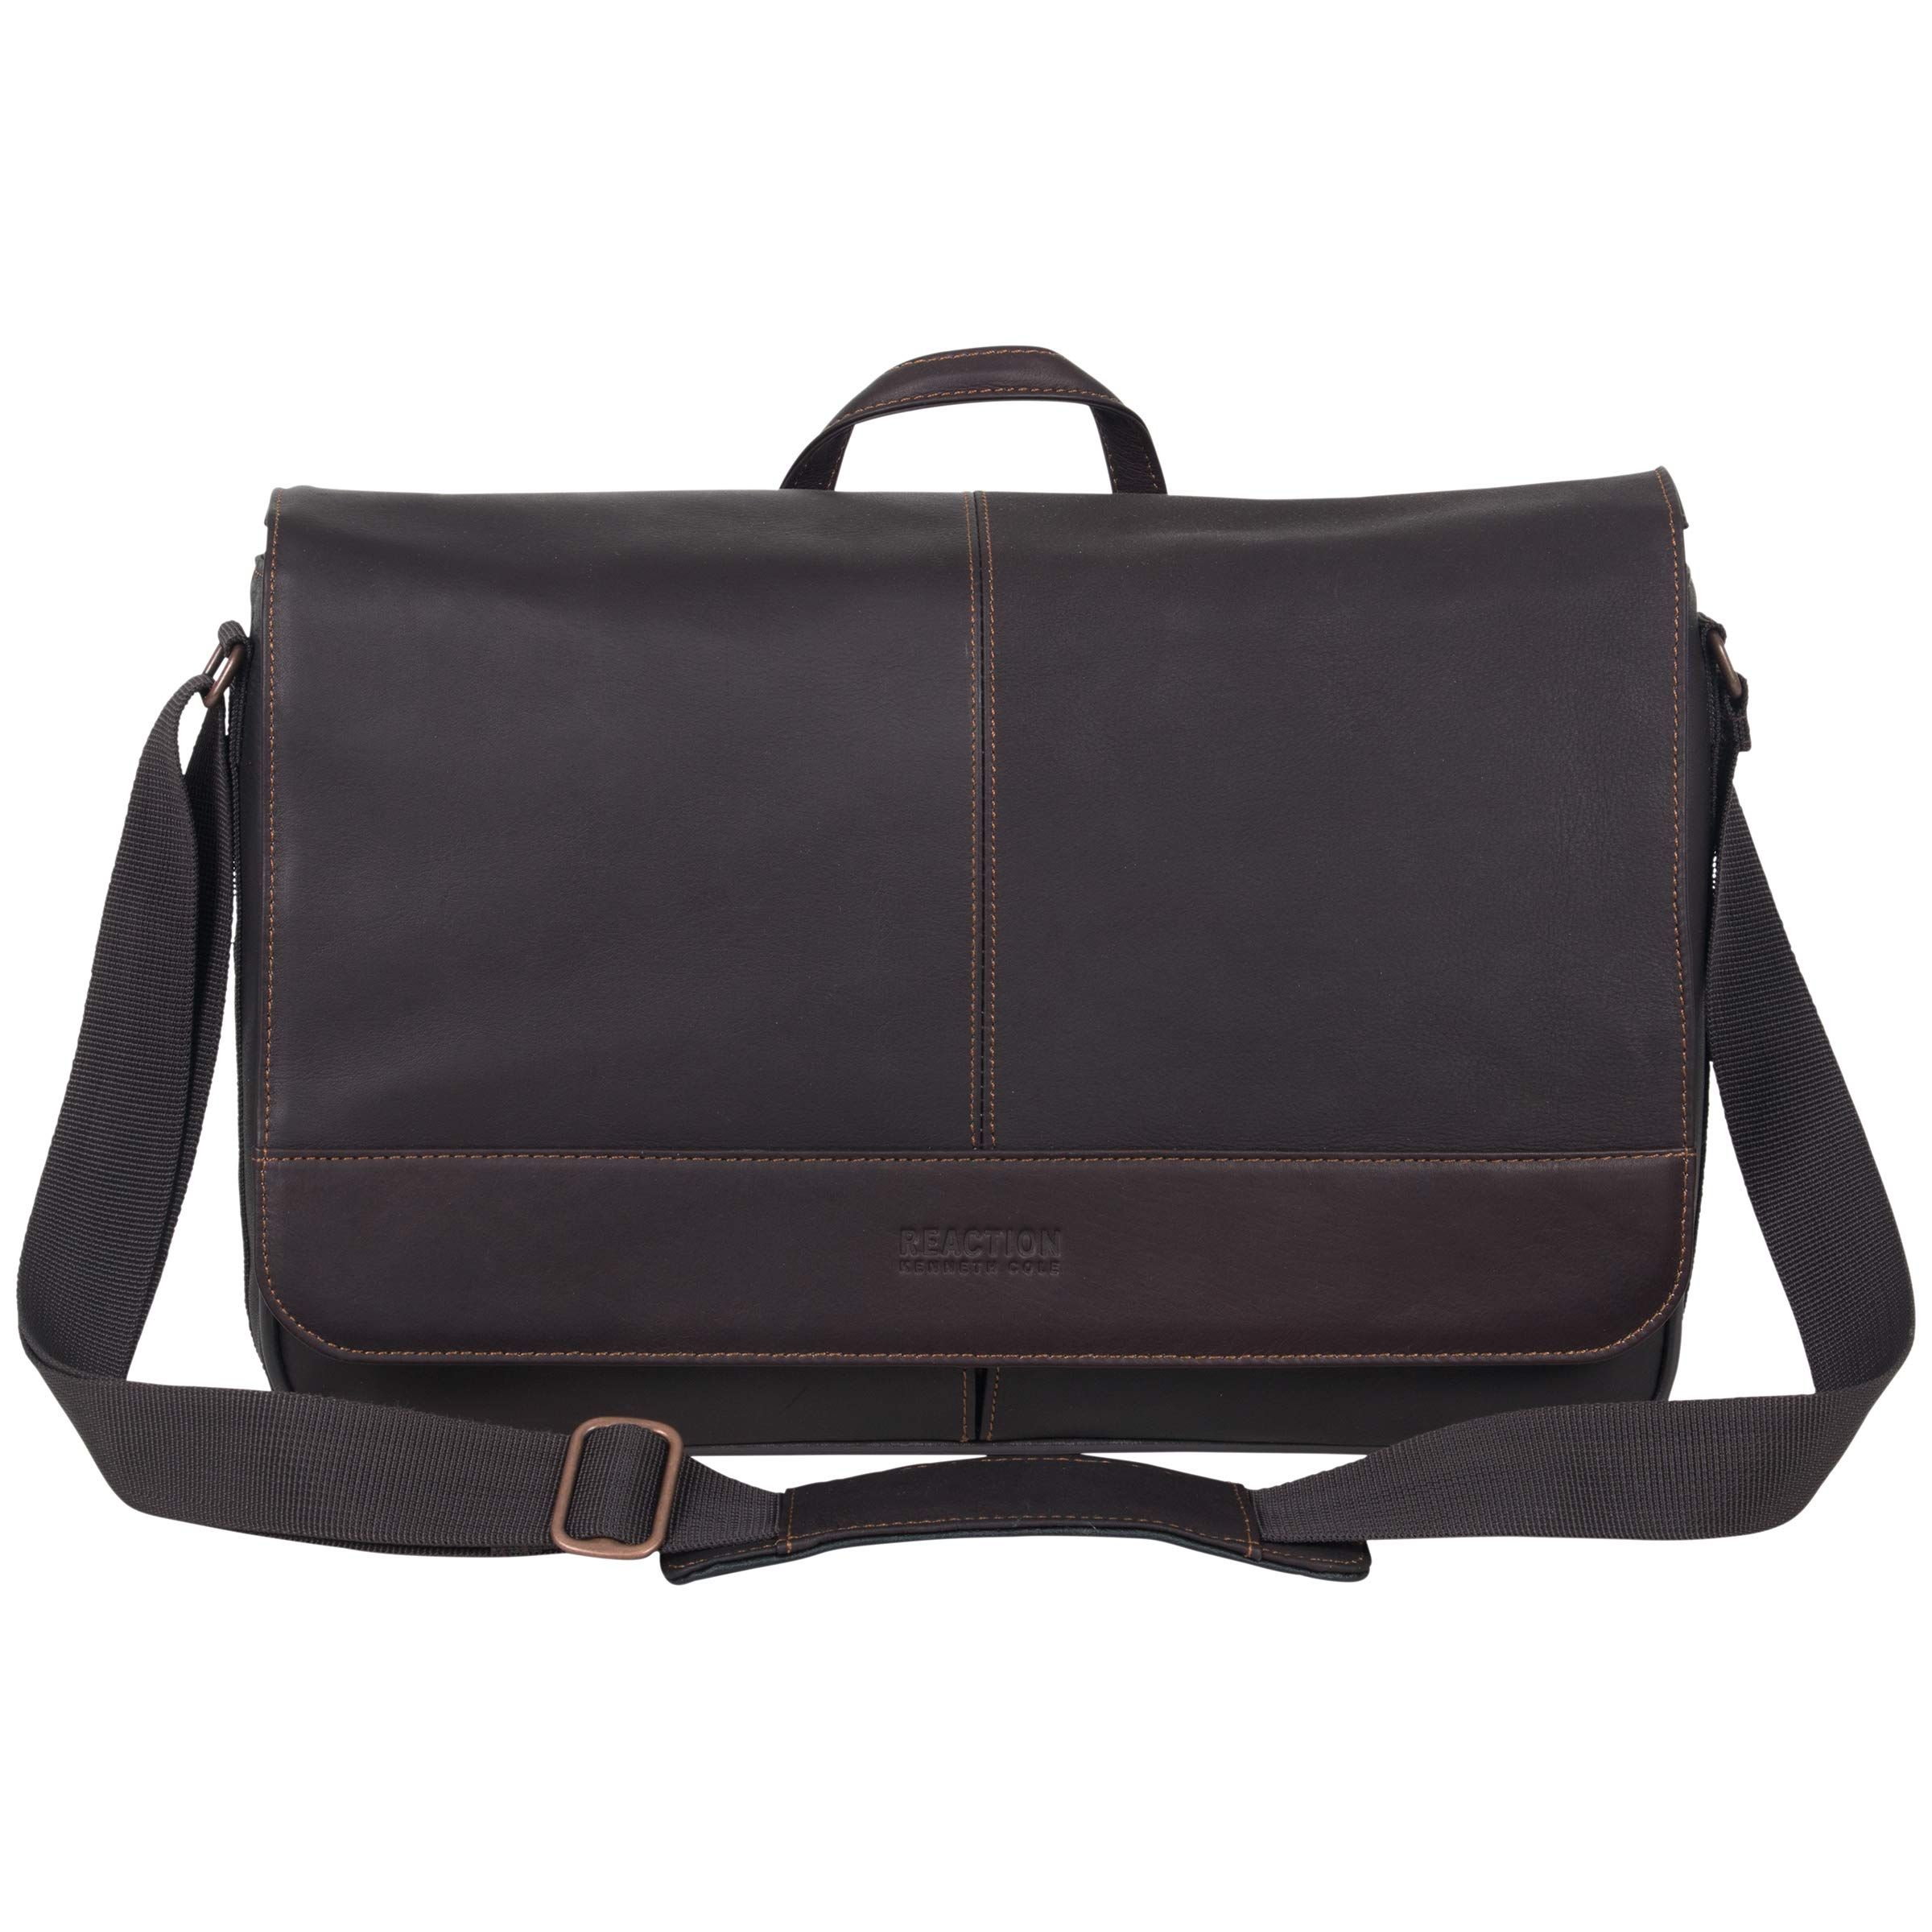 Kenneth Cole Reaction Come Bag Soon - Colombian Leather Laptop & iPad Messenger, Brown by Kenneth Cole REACTION